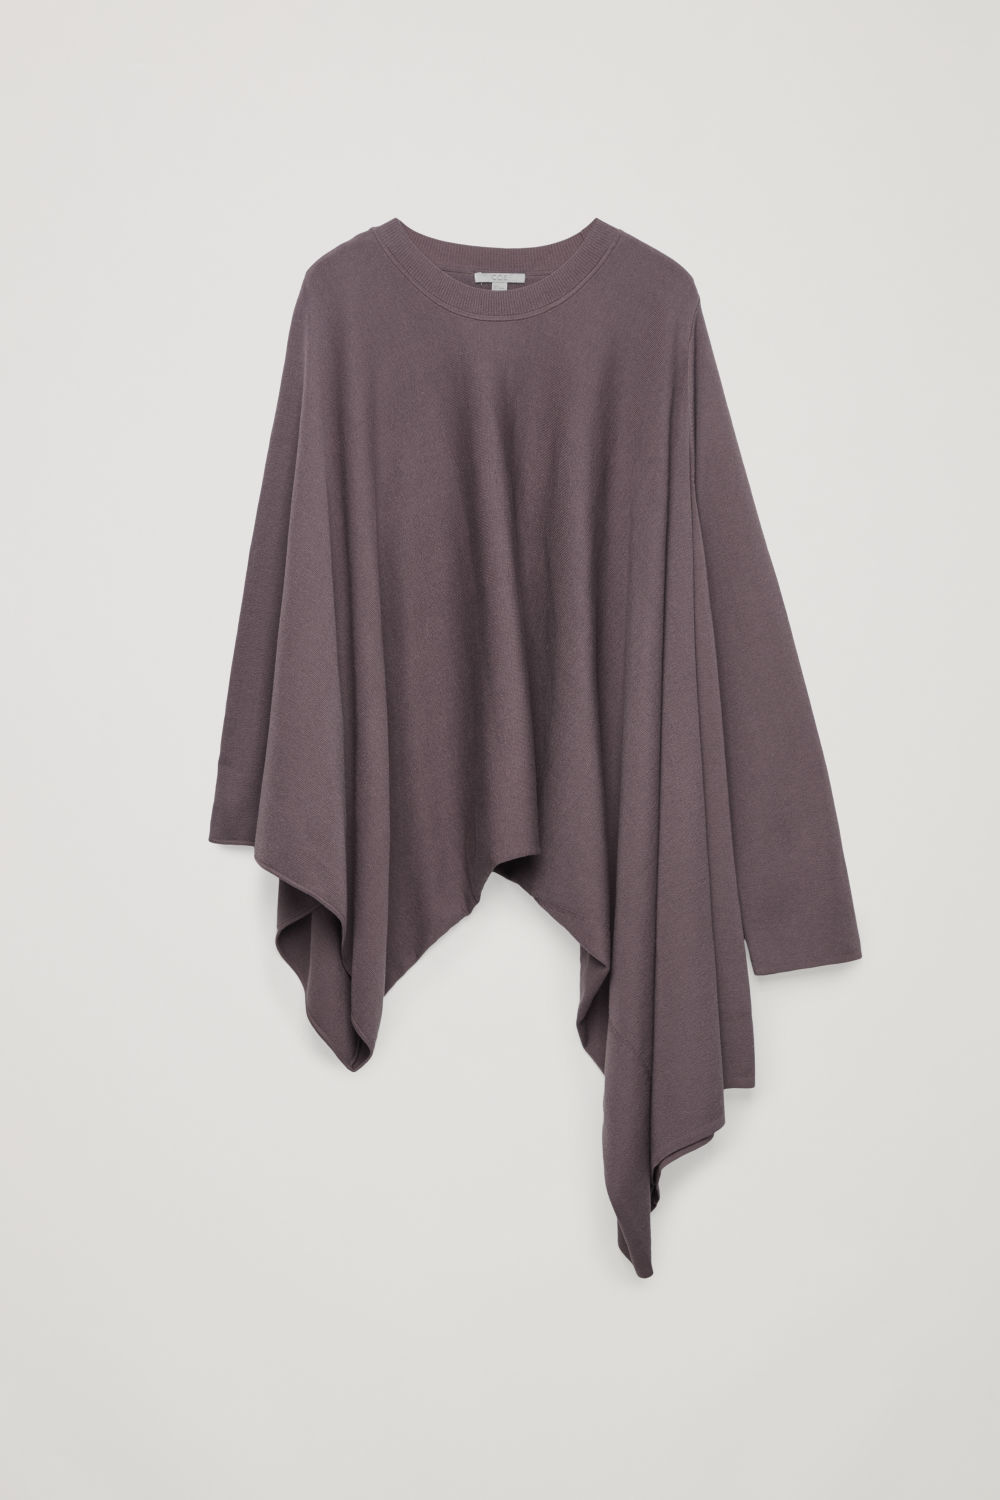 ASYMMETRIC DRAPE-KNIT TOP